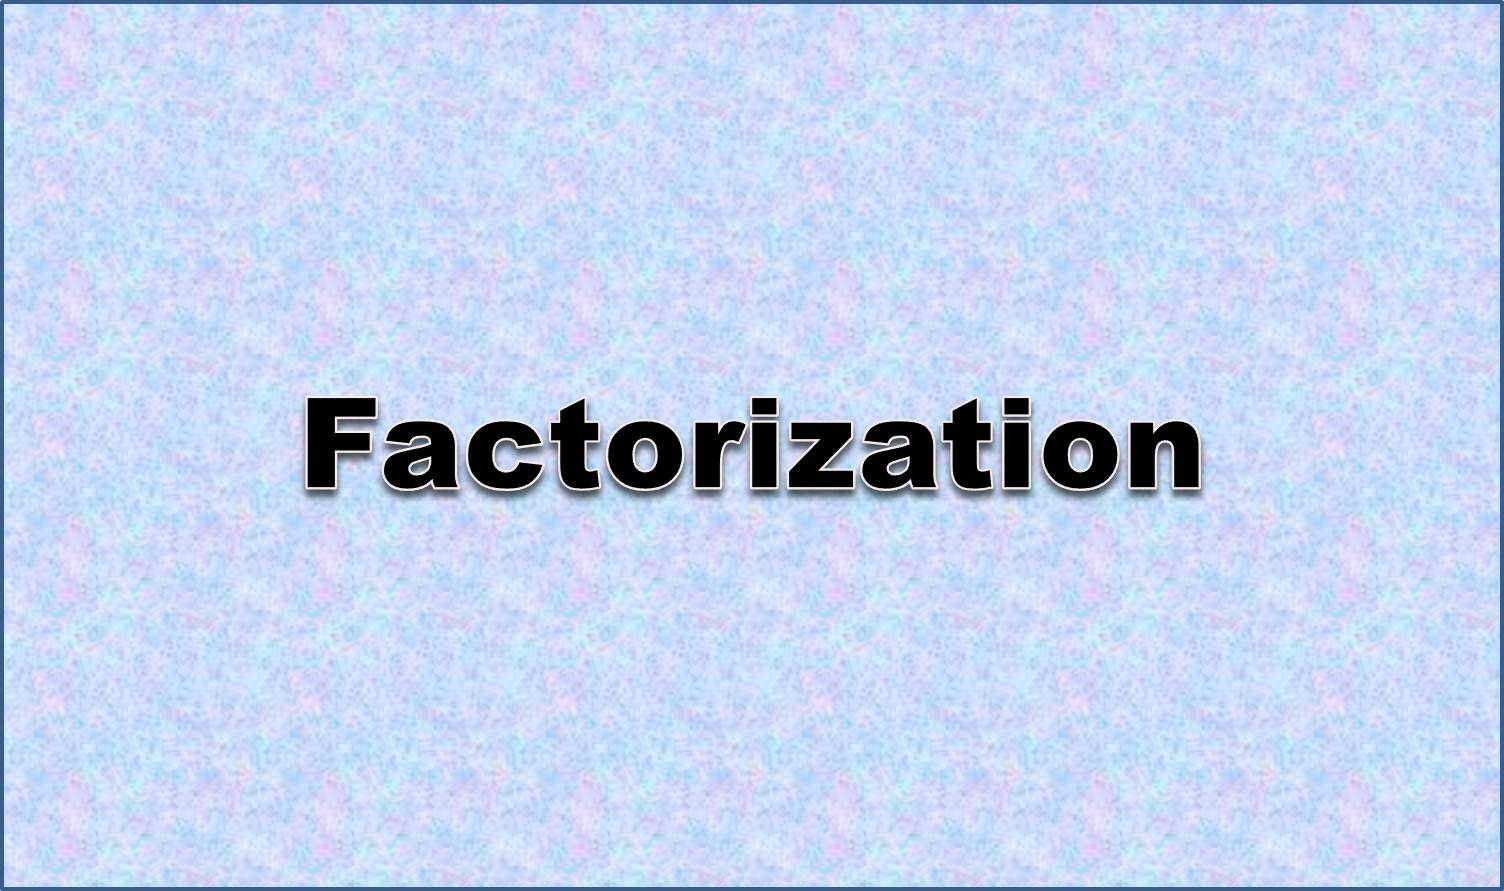 http://study.aisectonline.com/images/Factoring binomials-common factor.jpg